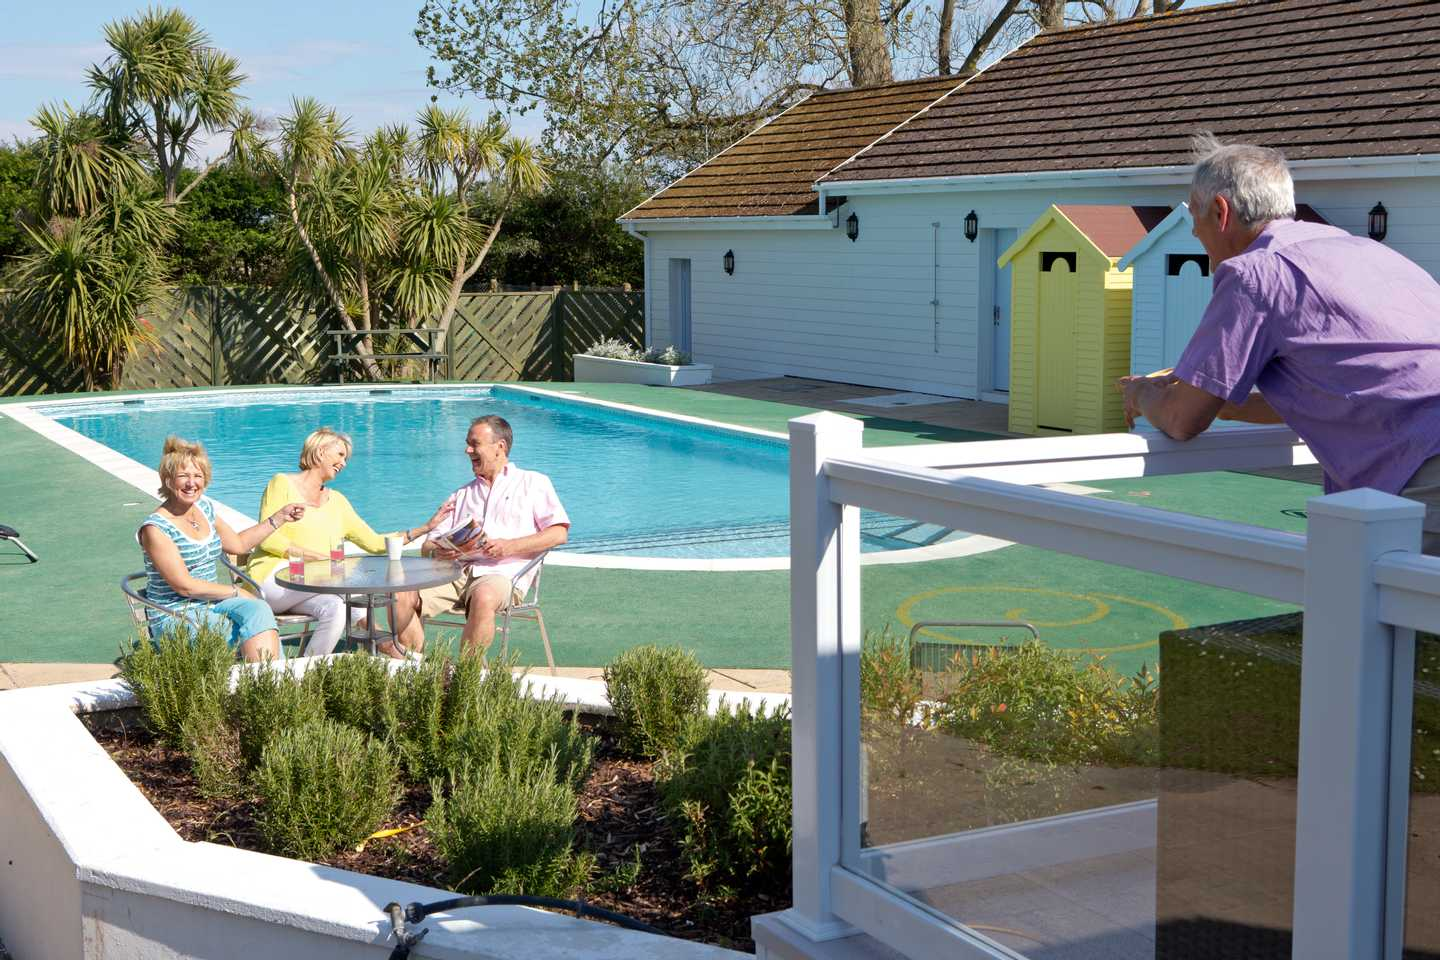 Guests having a drink by the heated outdoor pool